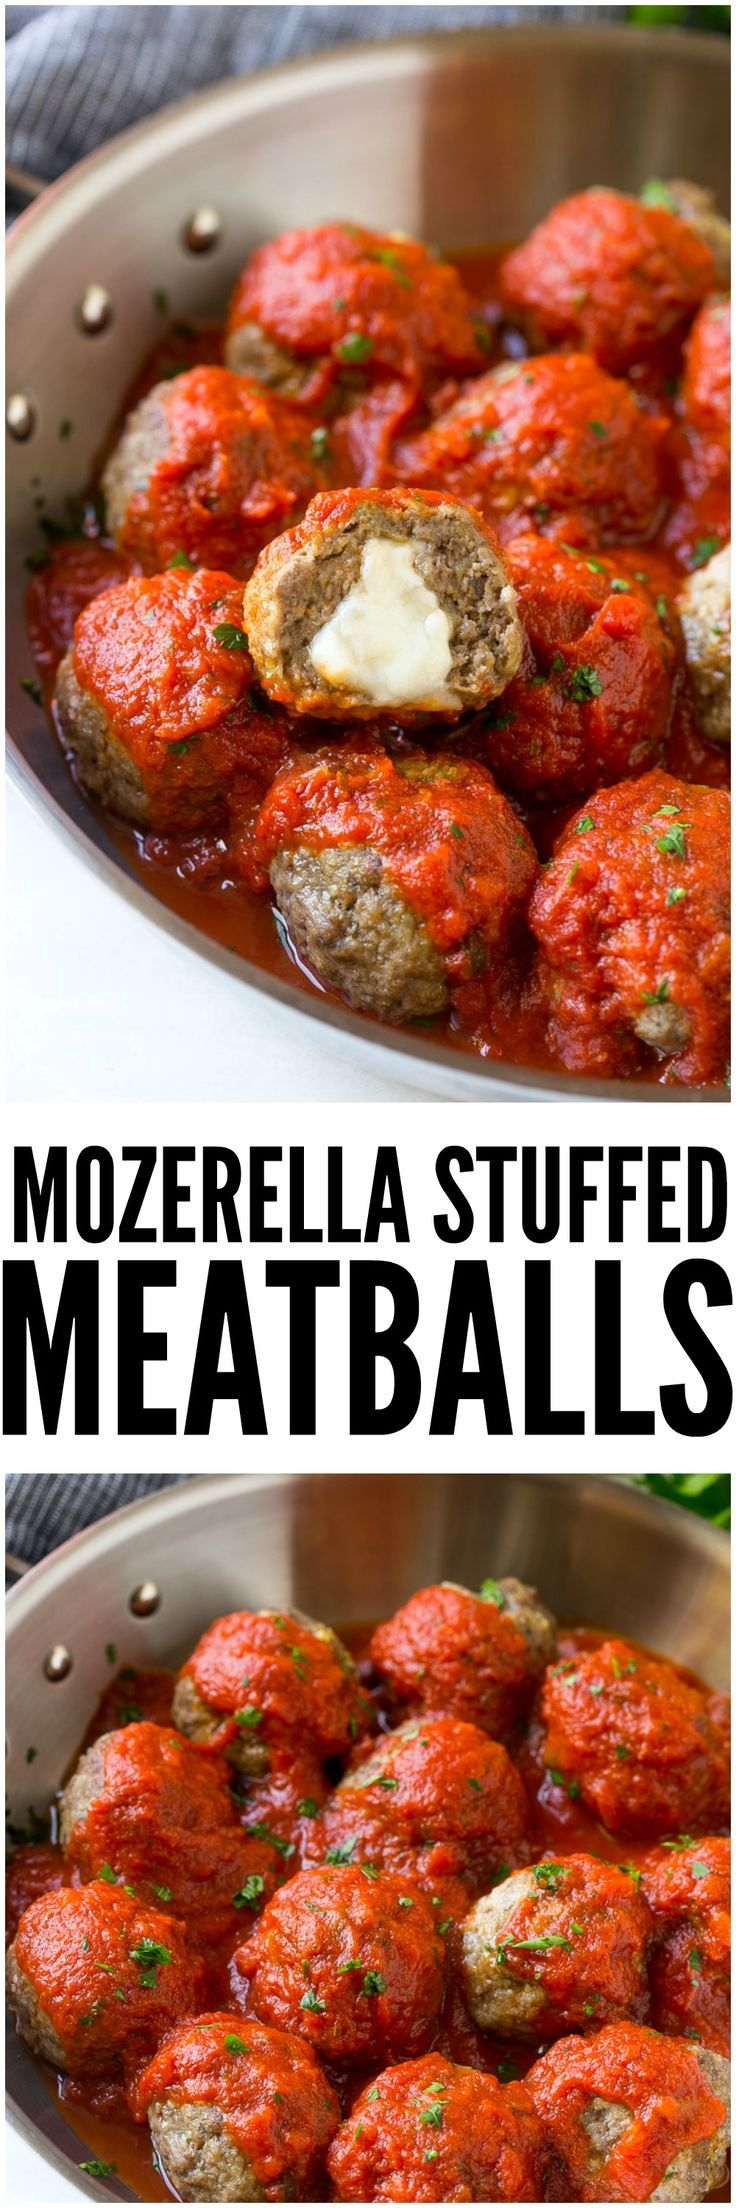 Mozzarella Stuffed Meatballs are a fun twist on the classic recipe - serve these meatballs as a party appetizer or over a big plate of spaghetti for a hearty meal!: